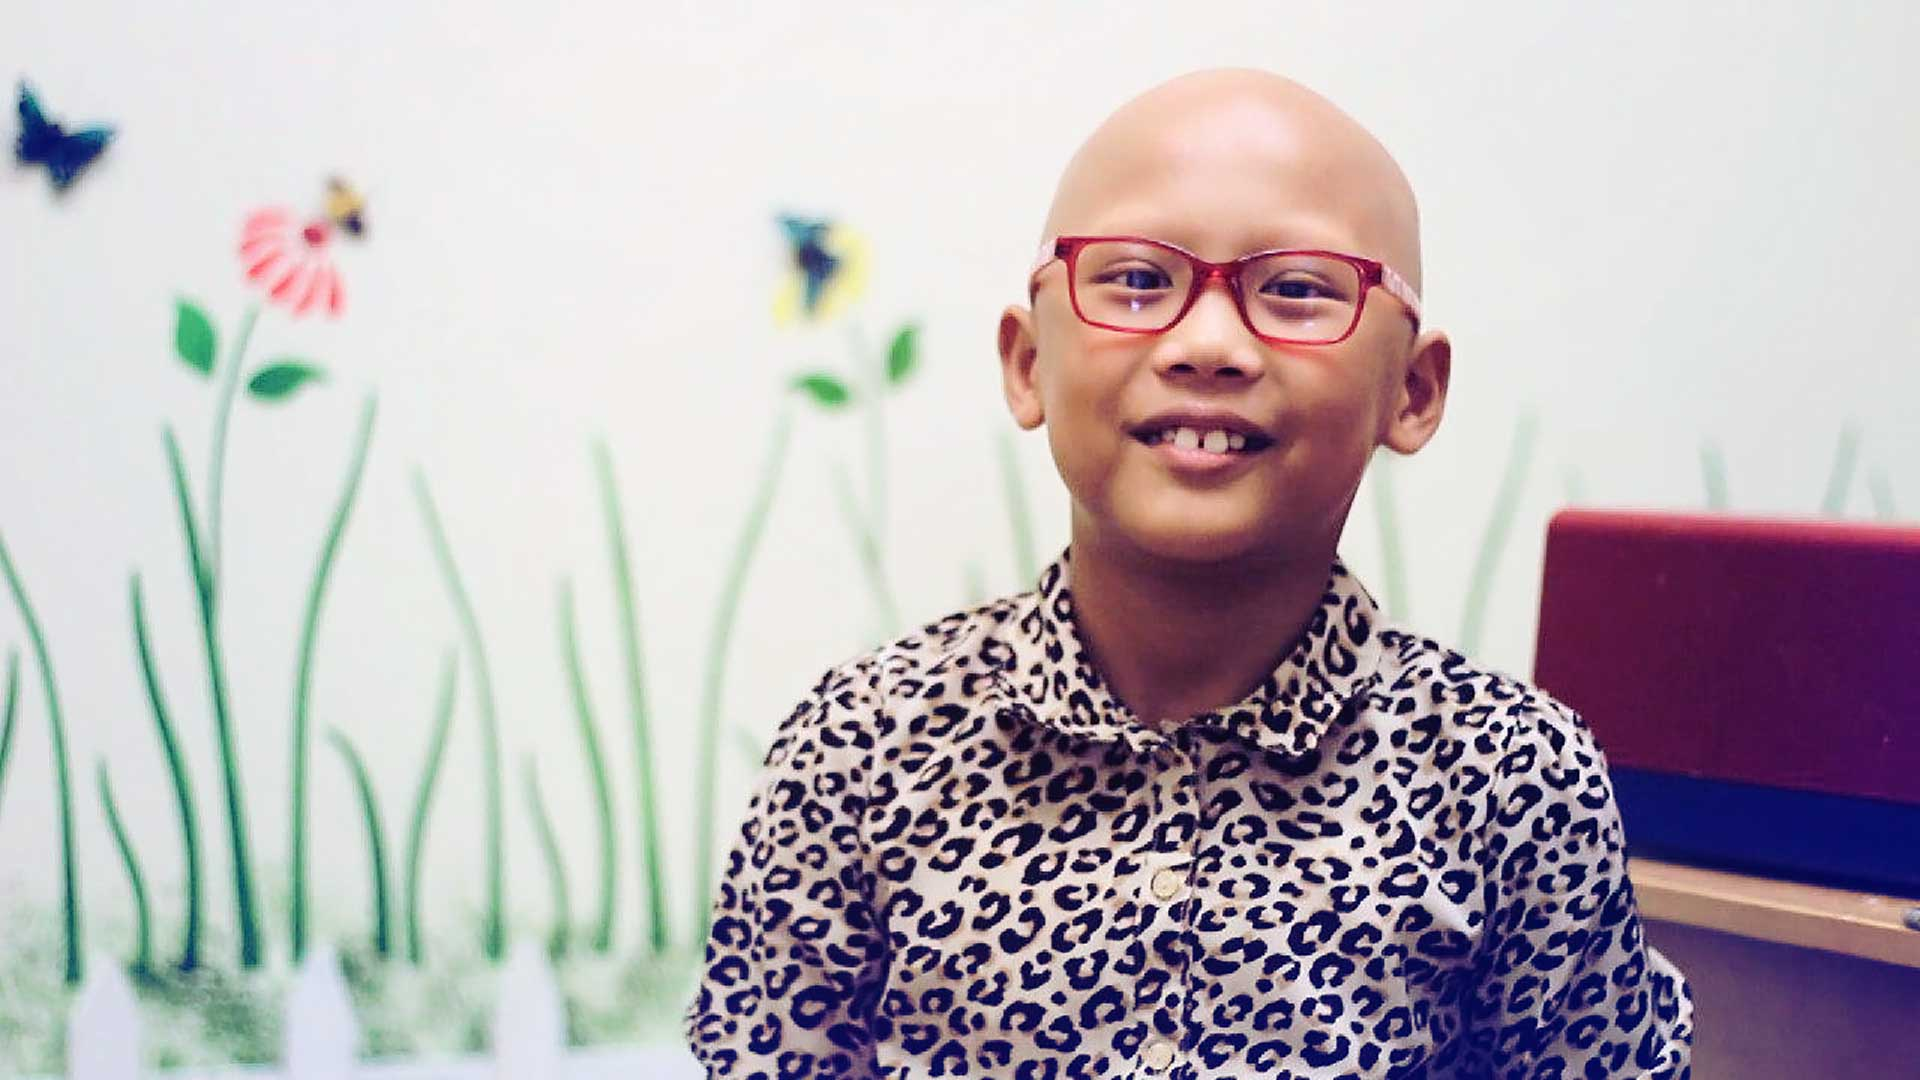 Prayers for a Young Girl Living with Alopecia